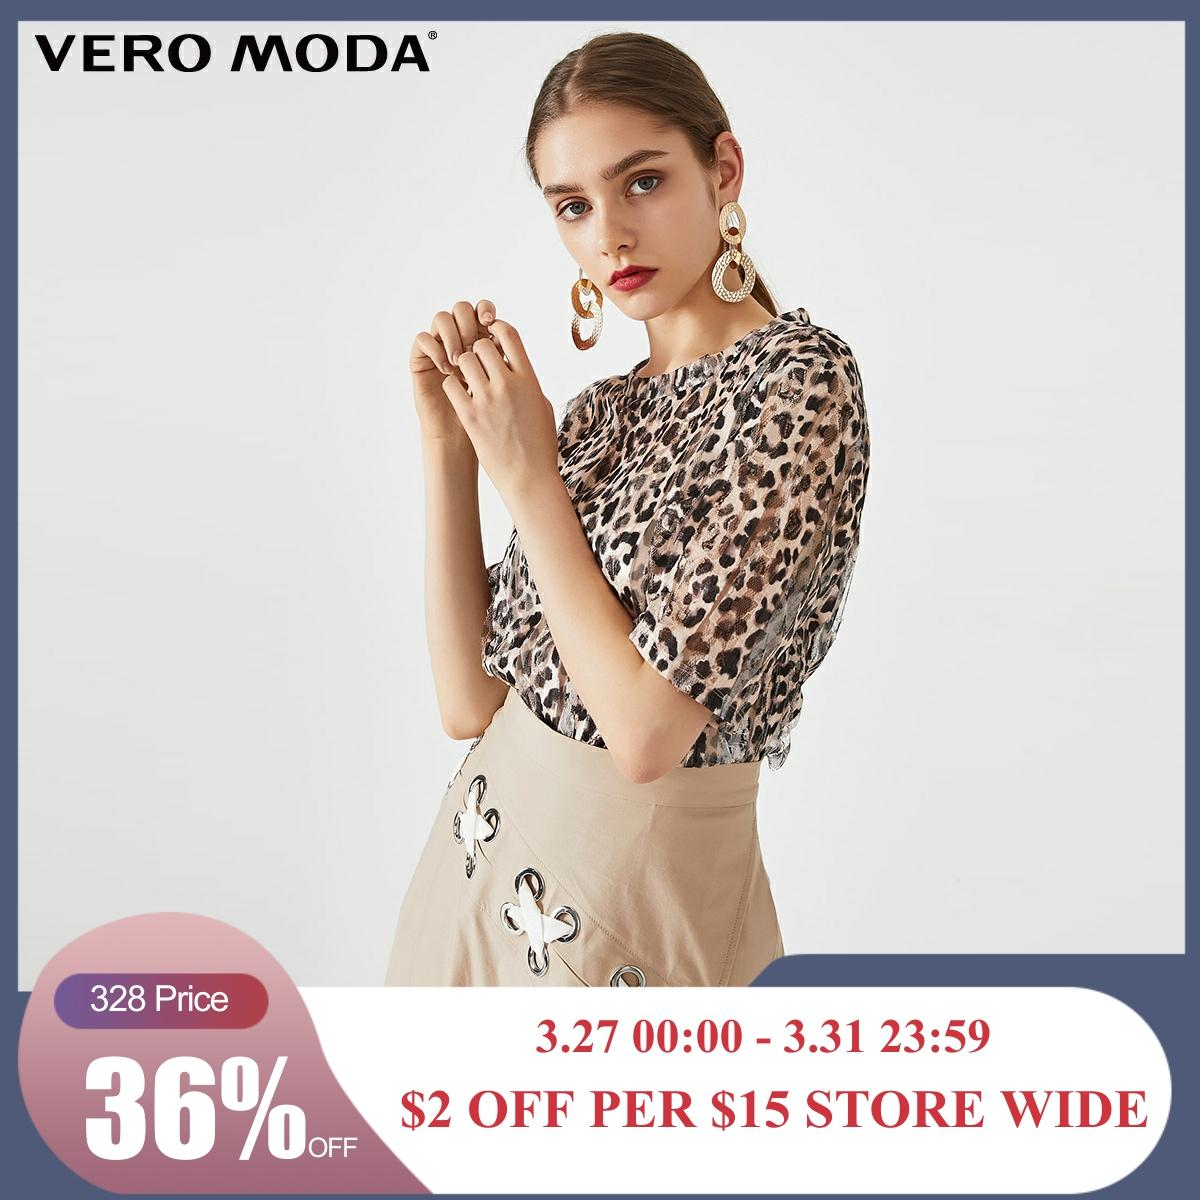 Vero Moda Women's Leopard Print Elbow Sleeves Two-piece Tops Blouse | 3192T1549